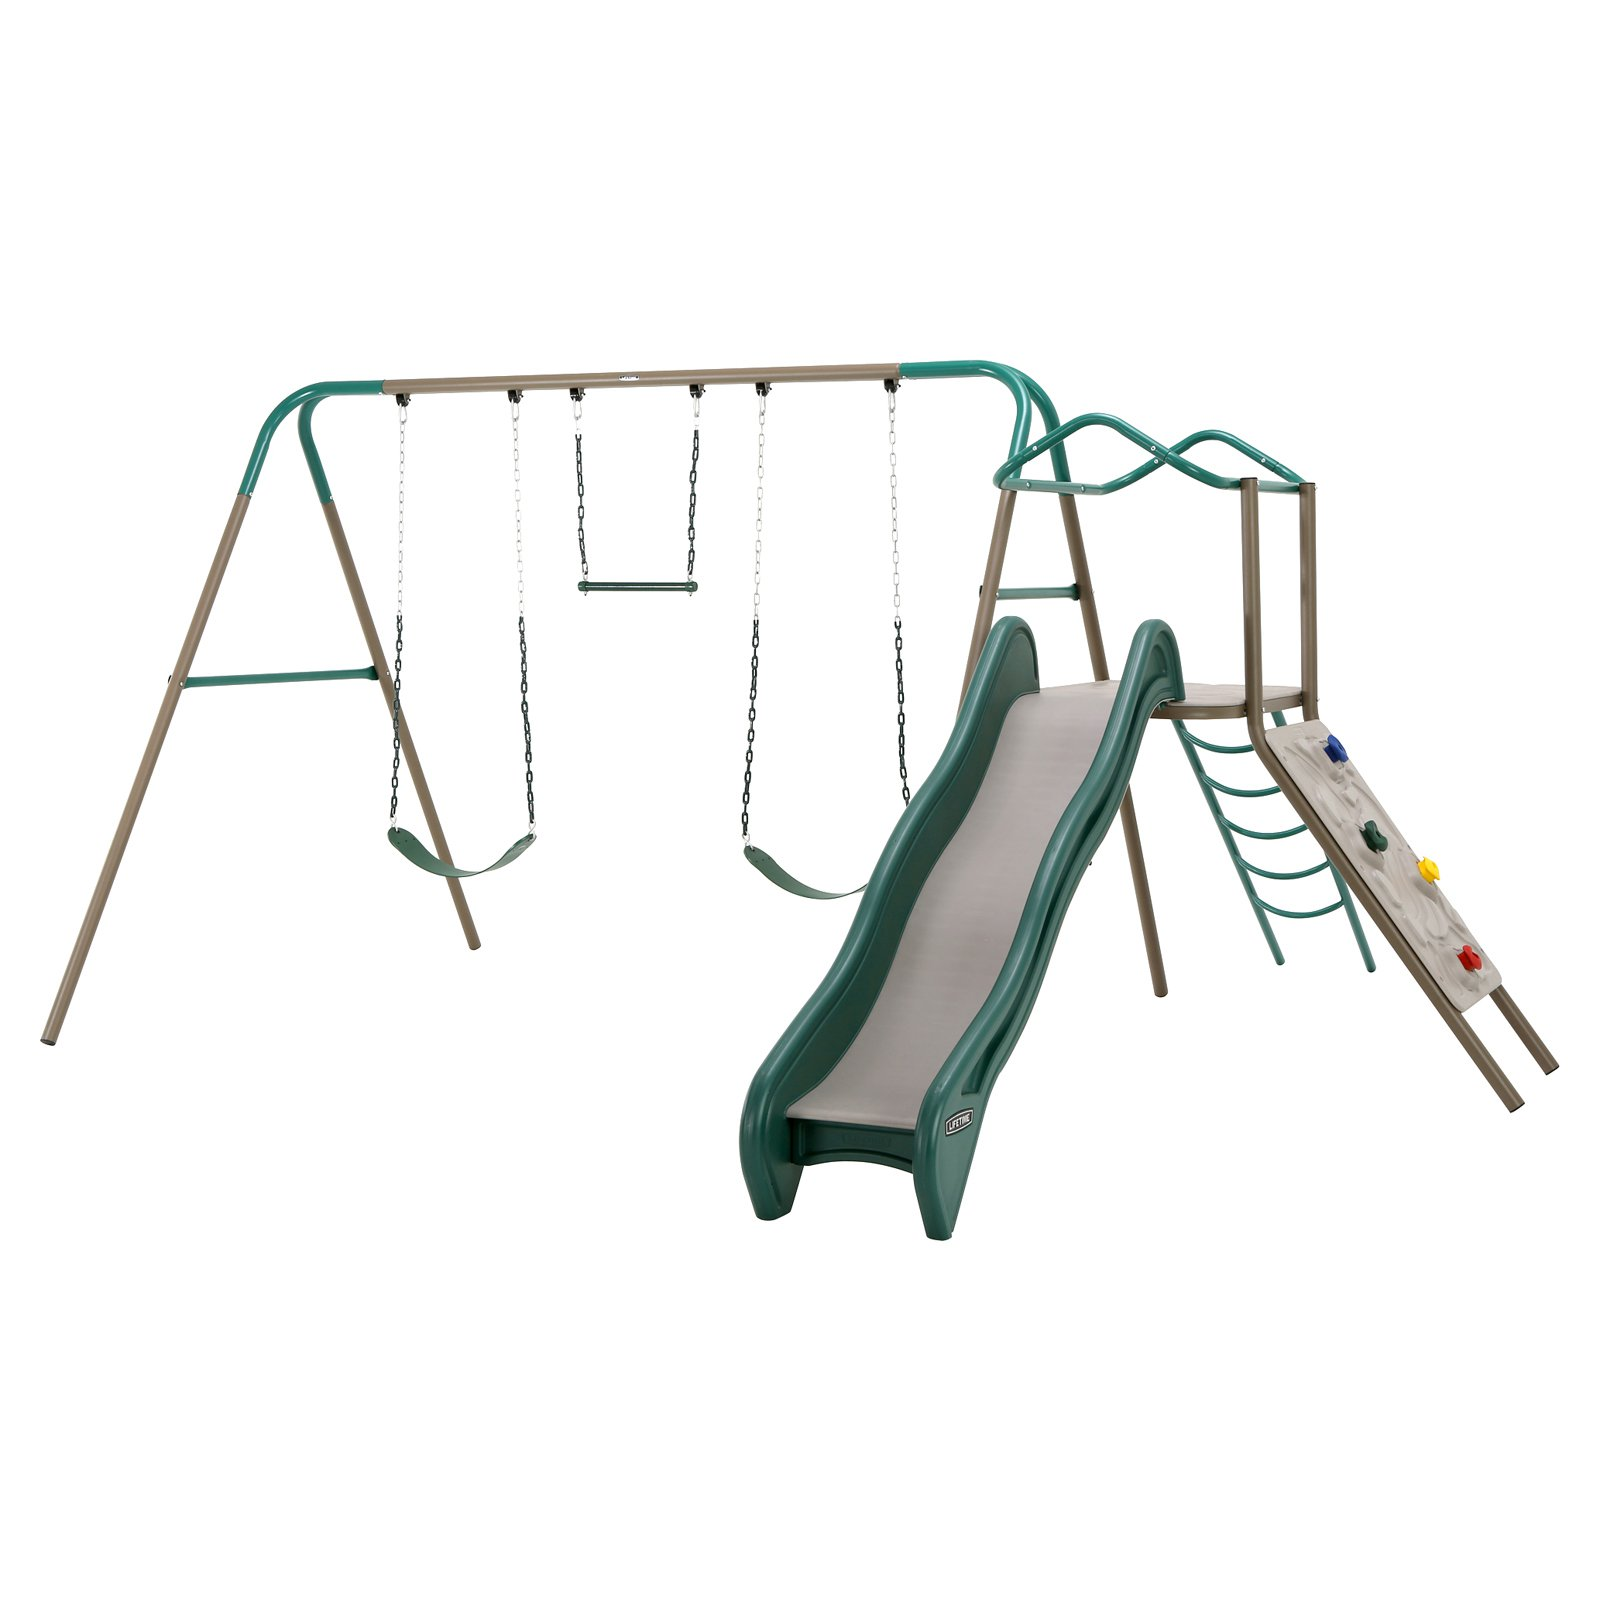 complete lifetime boasts wall lower a and climber with playful two low playhouse swings set best poly play living it sets double maintenance clubhouse naturally comes today family swing for kids durable this outdoor level backyard the slide